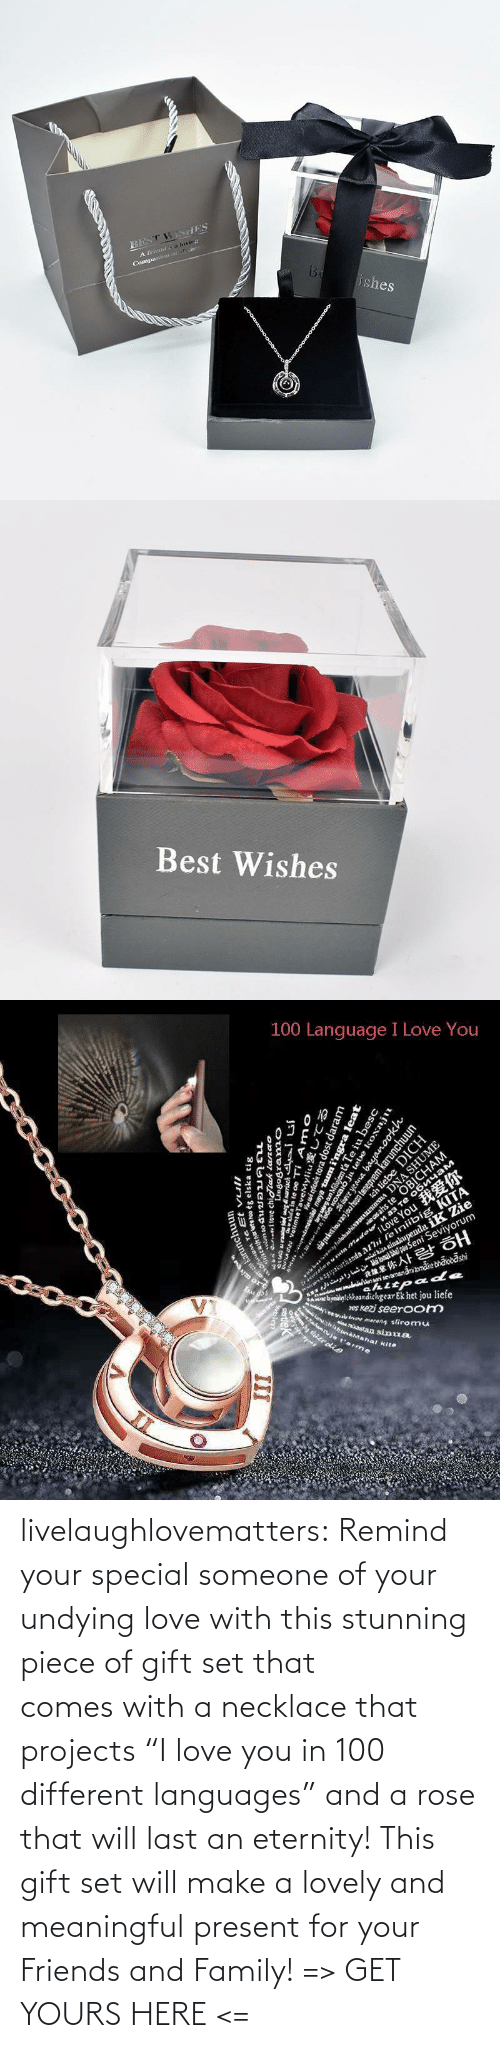 "Family, Friends, and Love: livelaughlovematters:  Remind your special someone of your undying love with this stunning piece of gift set that comes with a necklace that projects ""I love you in 100 different languages"" and a rose that will last an eternity! This gift set will make a lovely and meaningful present for your Friends and Family! => GET YOURS HERE <="